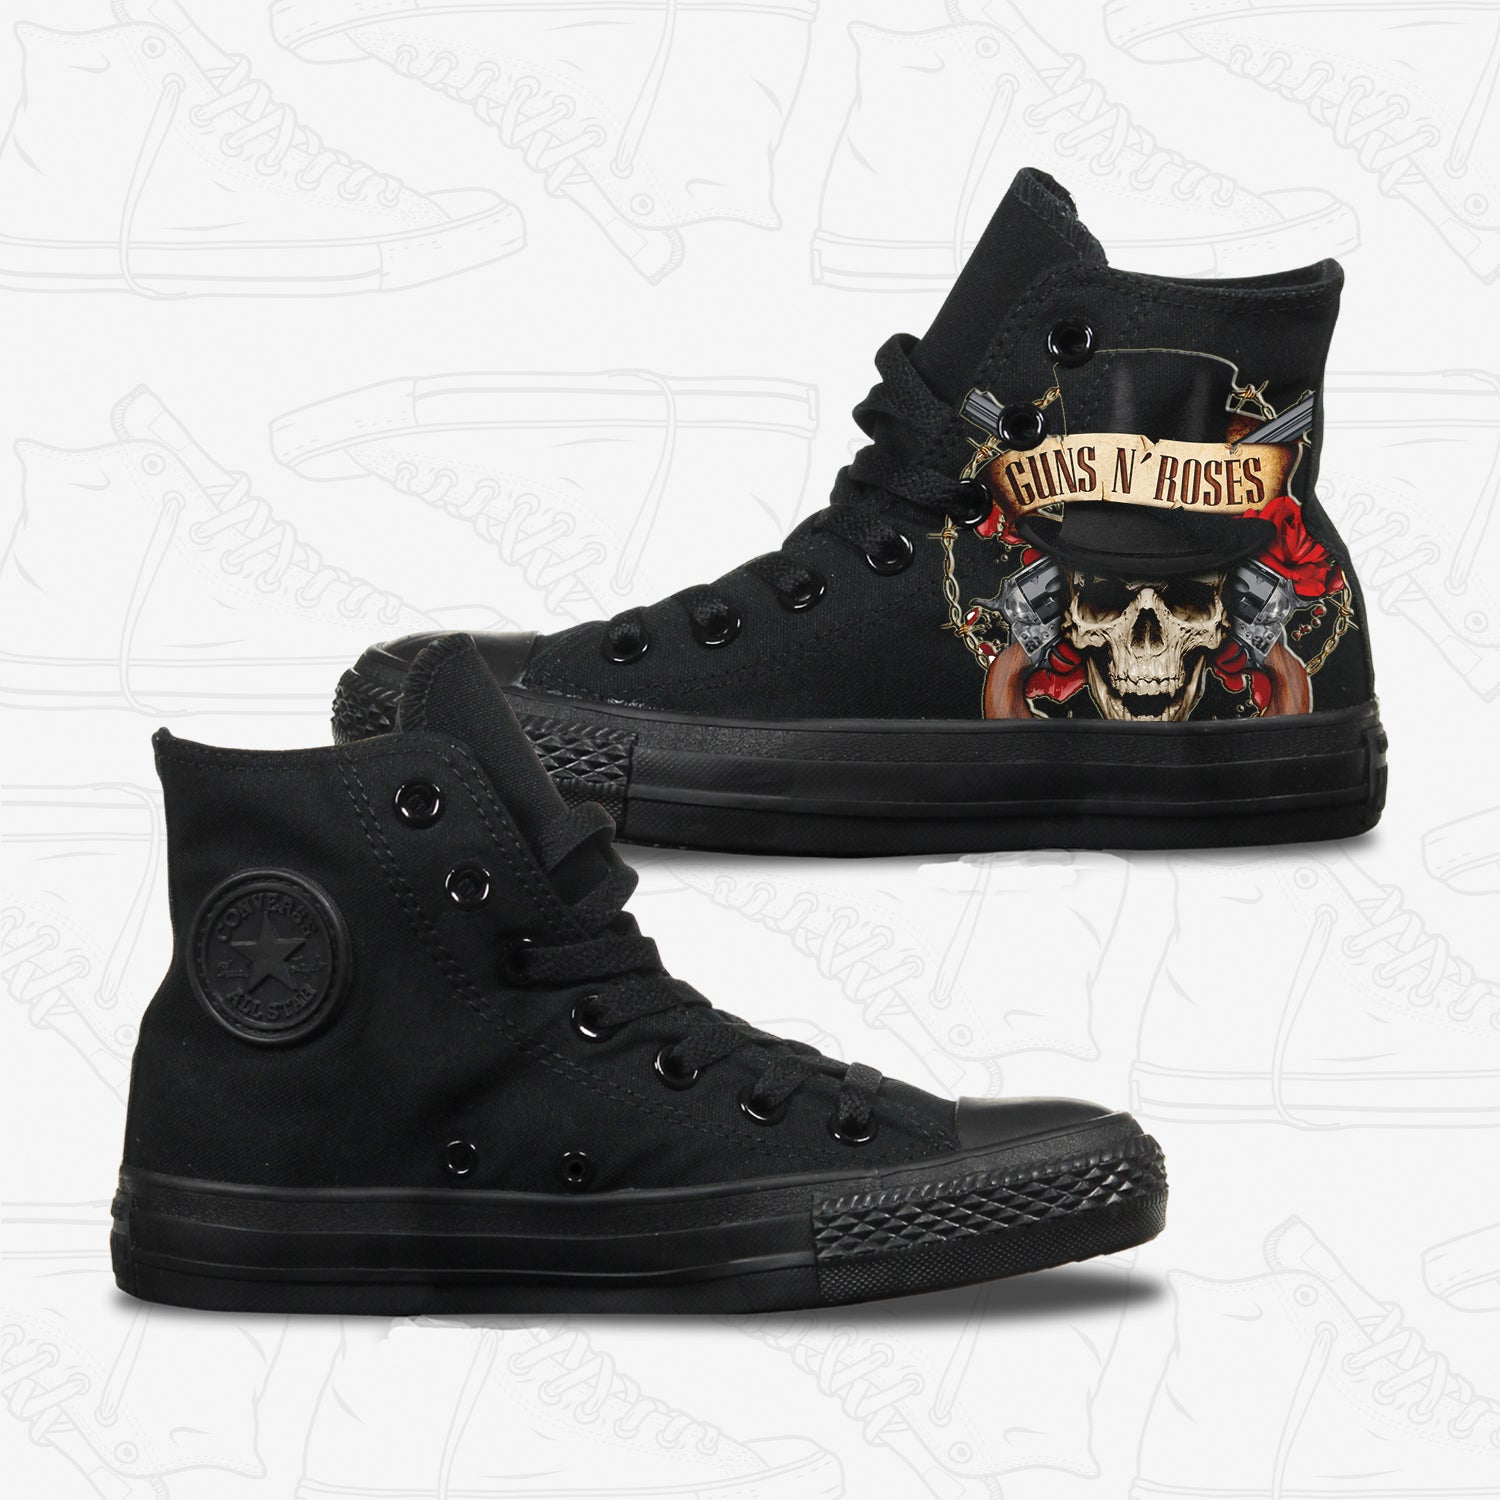 Guns n Roses Adult Converse Shoes